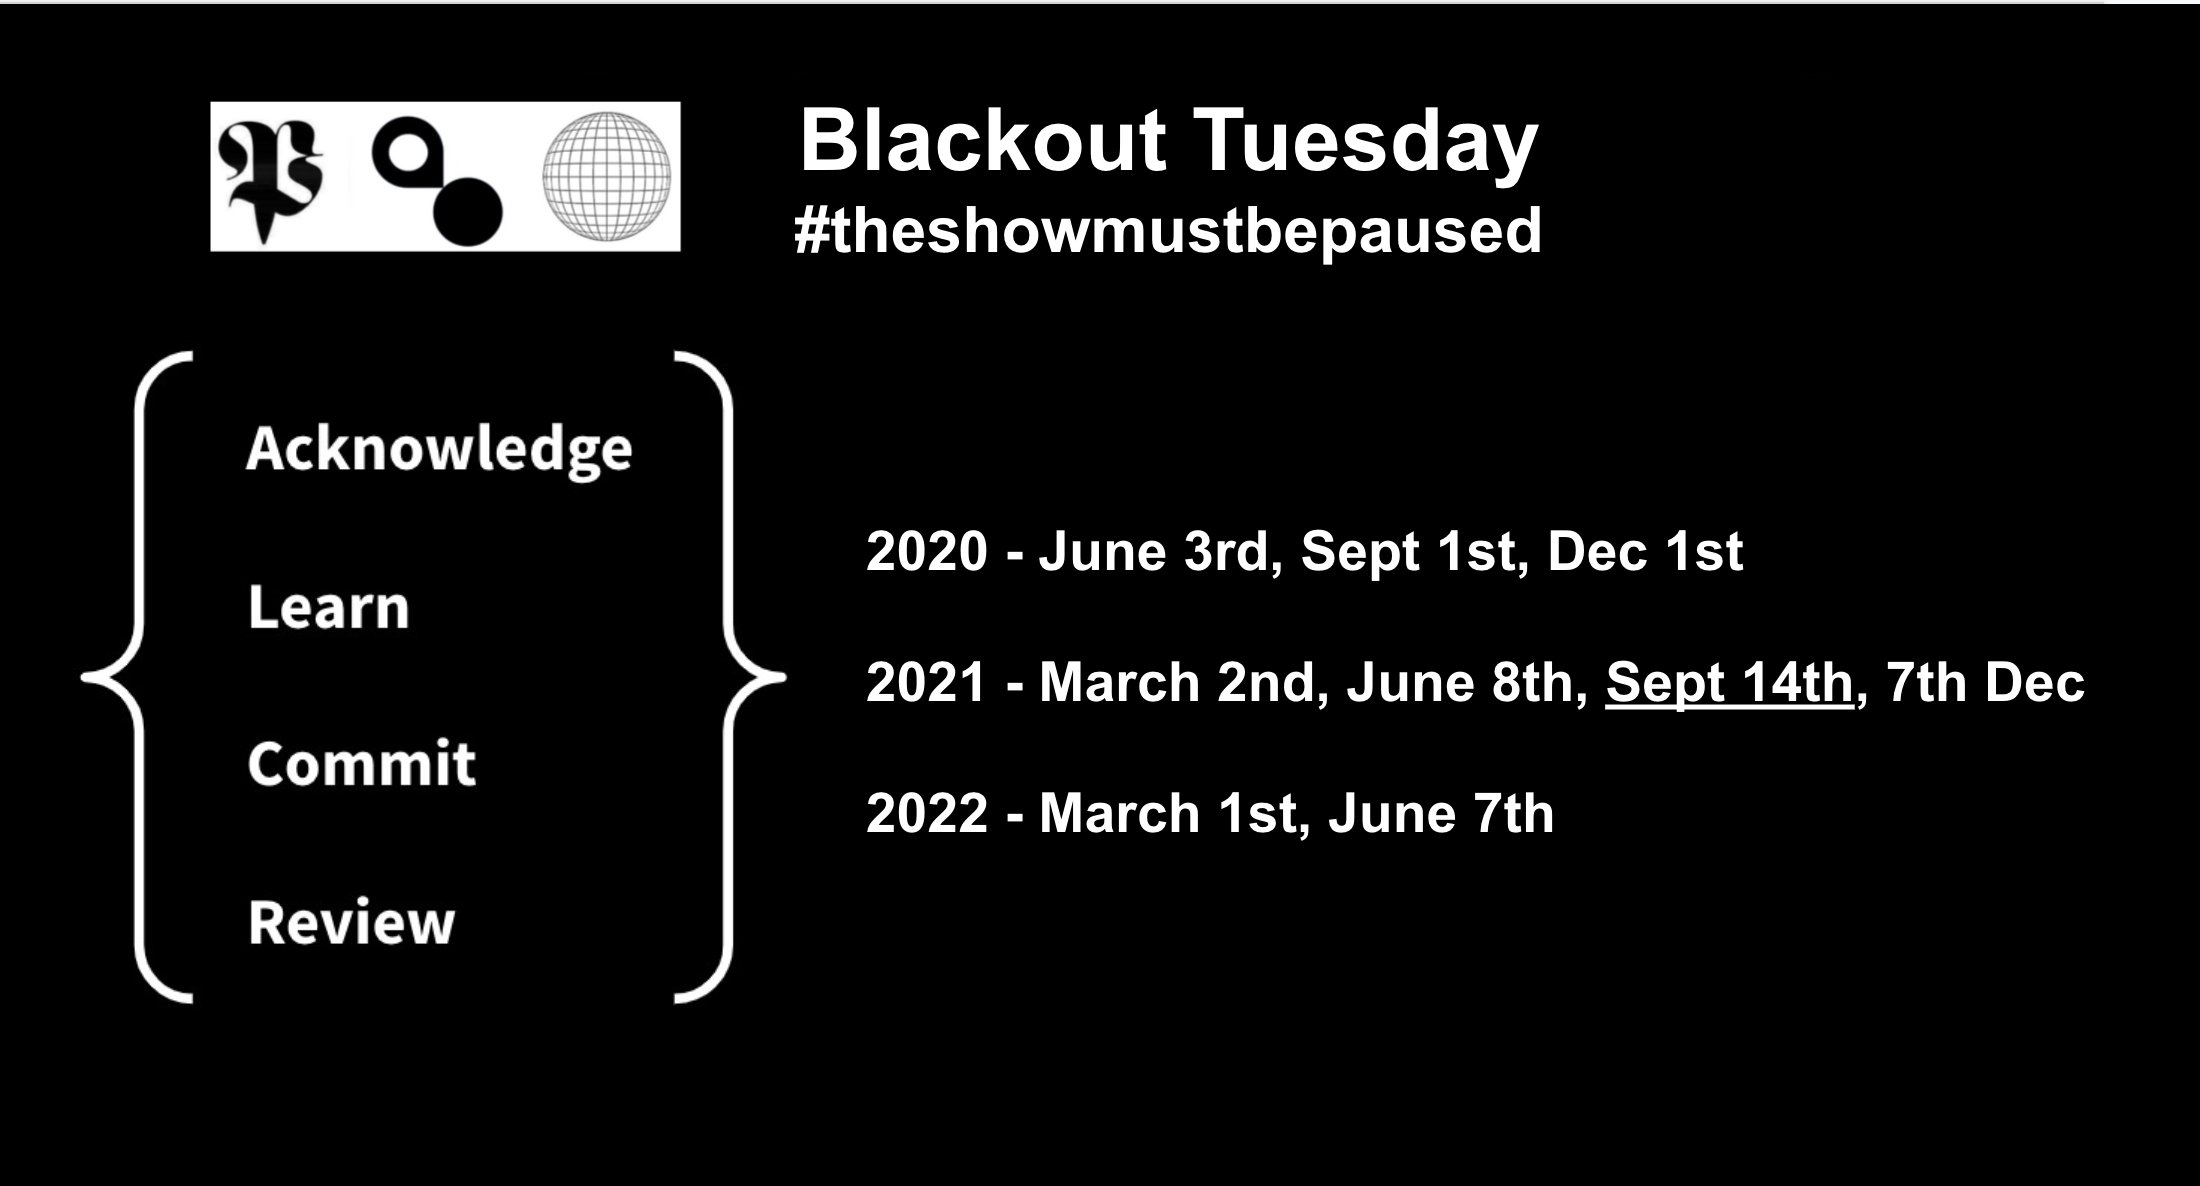 Graphic for Blackout Tuesday, with a list of dates